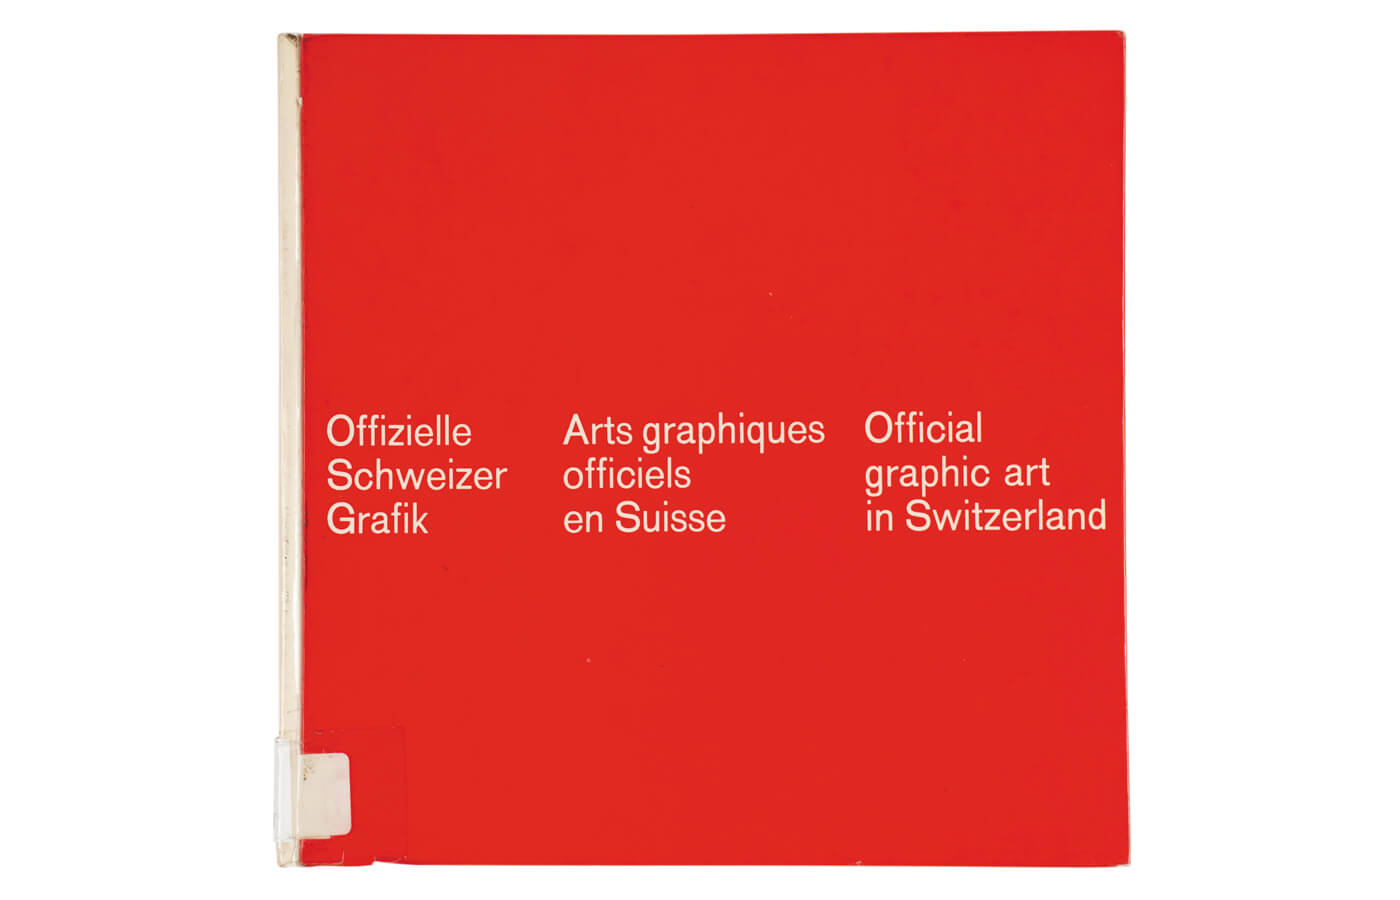 Offizielle Scheizer Grafik | Arts graphiques officiels en Suisse | Official graphic art in Switzerland